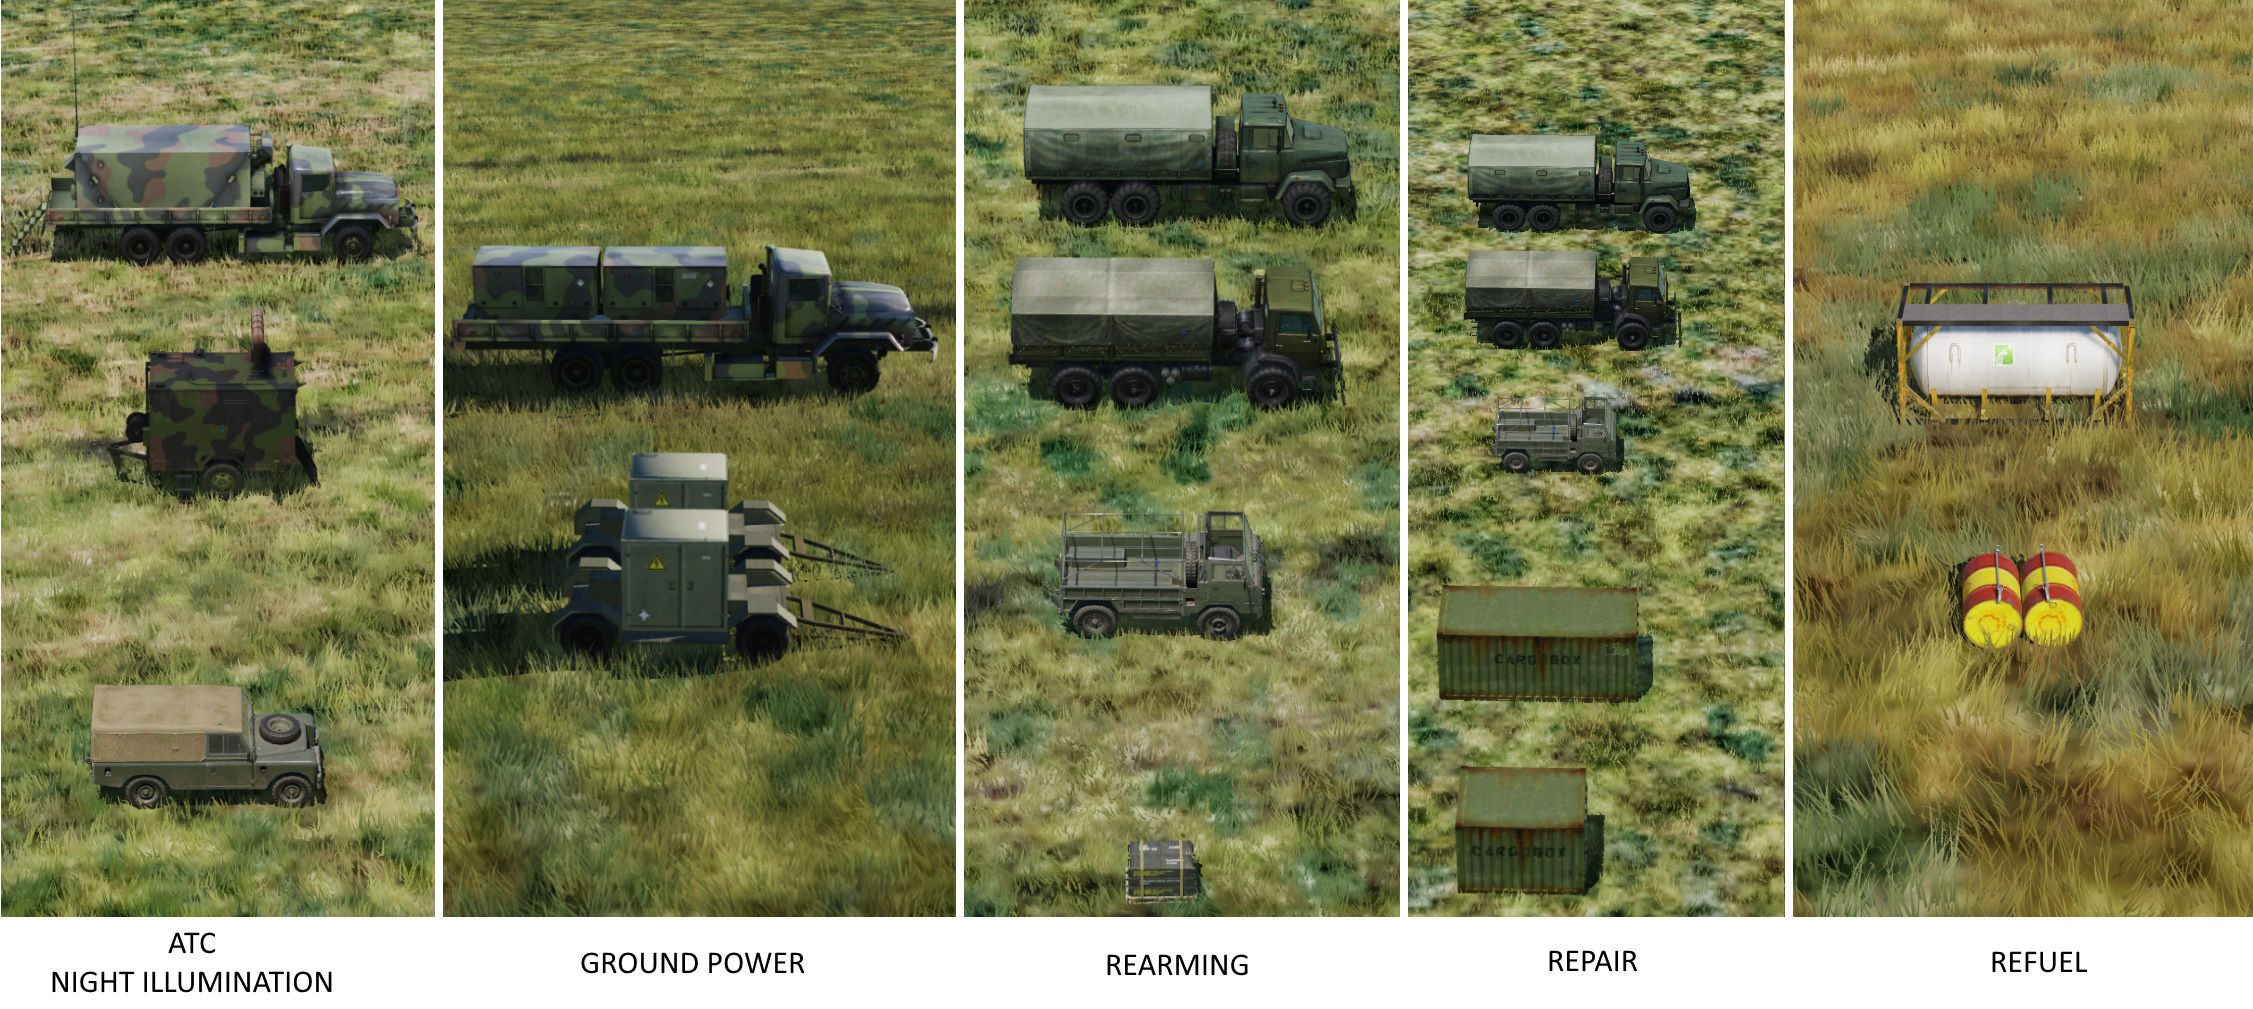 Additional FARP Support Vehicles/objects